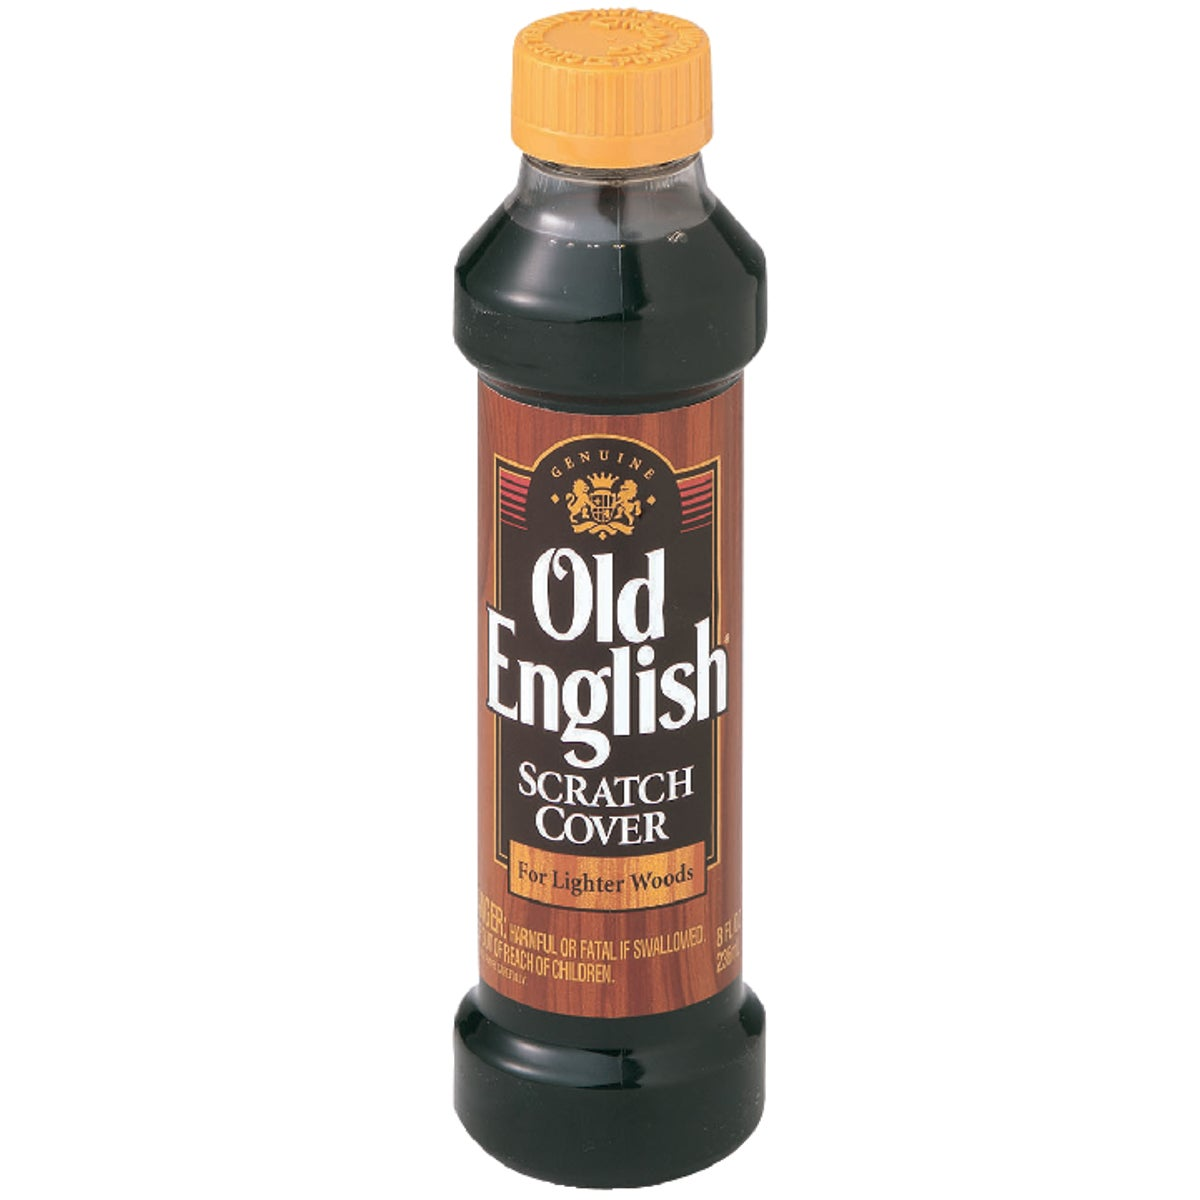 LIGHT OLD ENGLISH - 6233875462 by Reckitt Benckiser